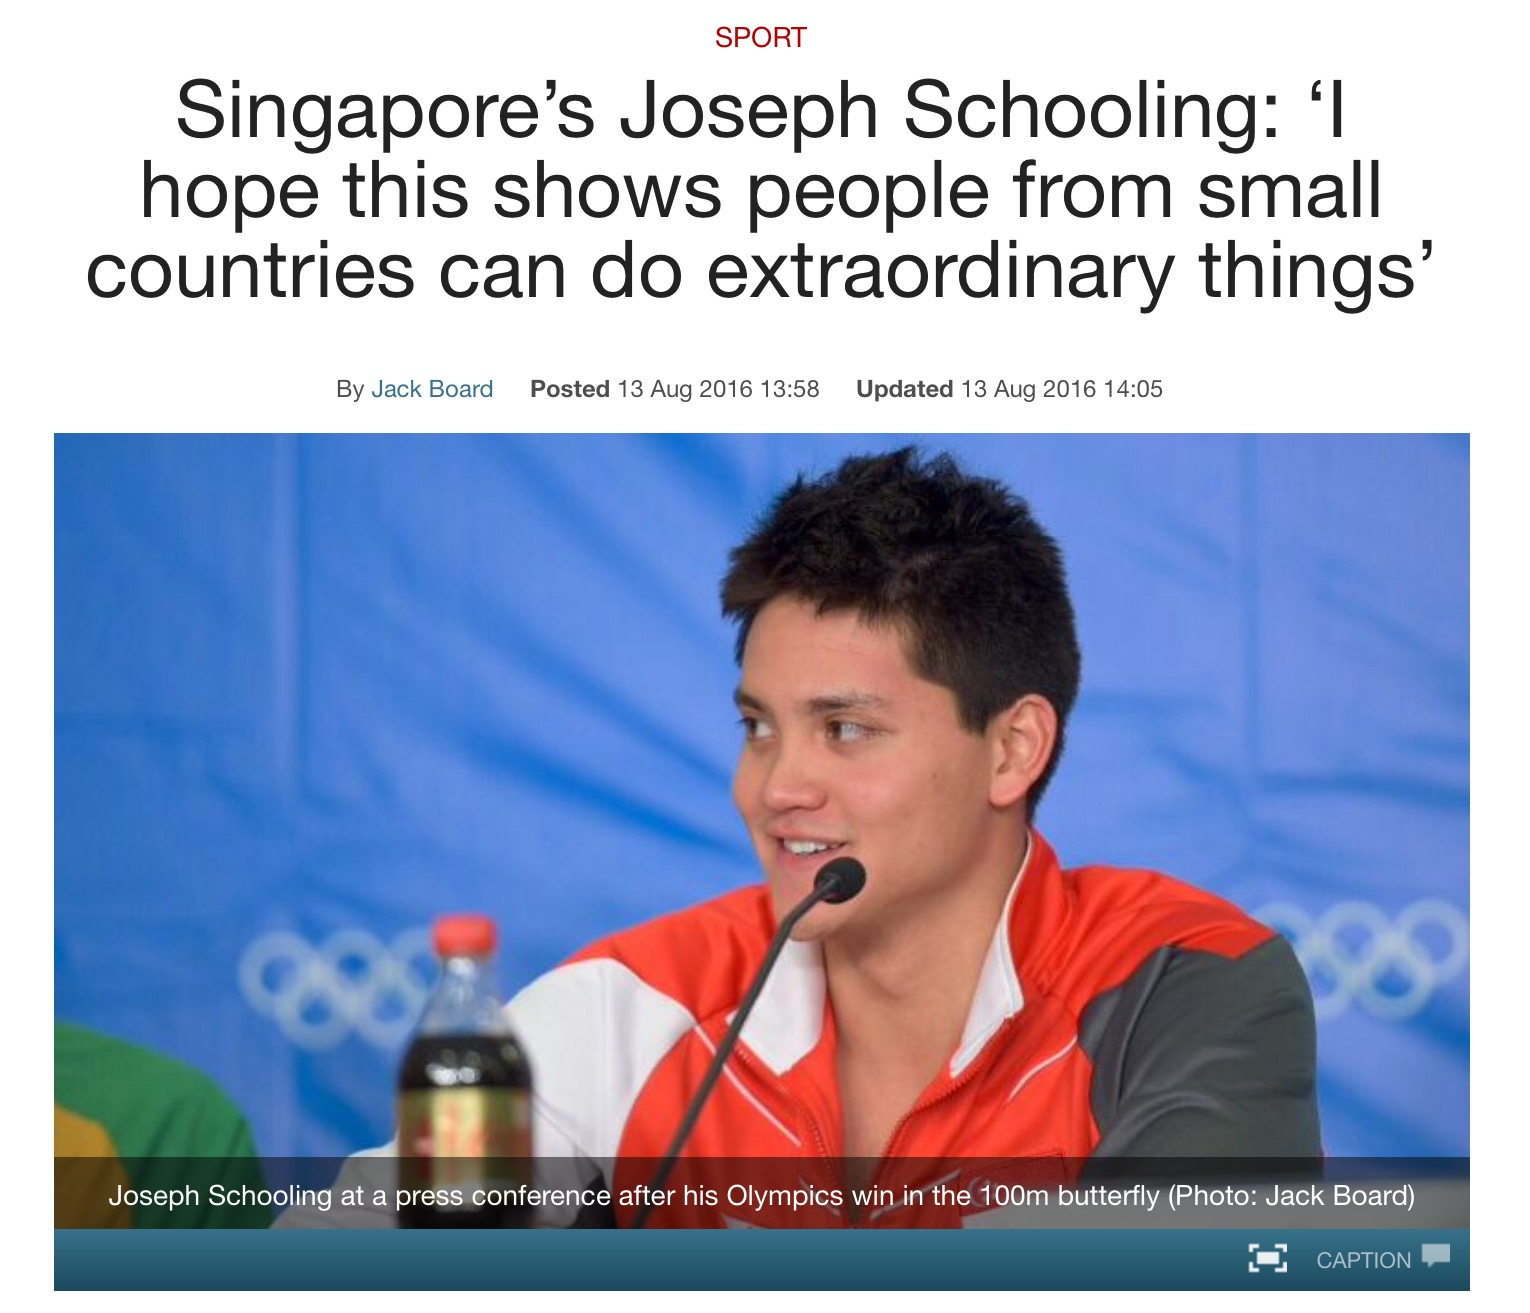 via Channelnewsasia